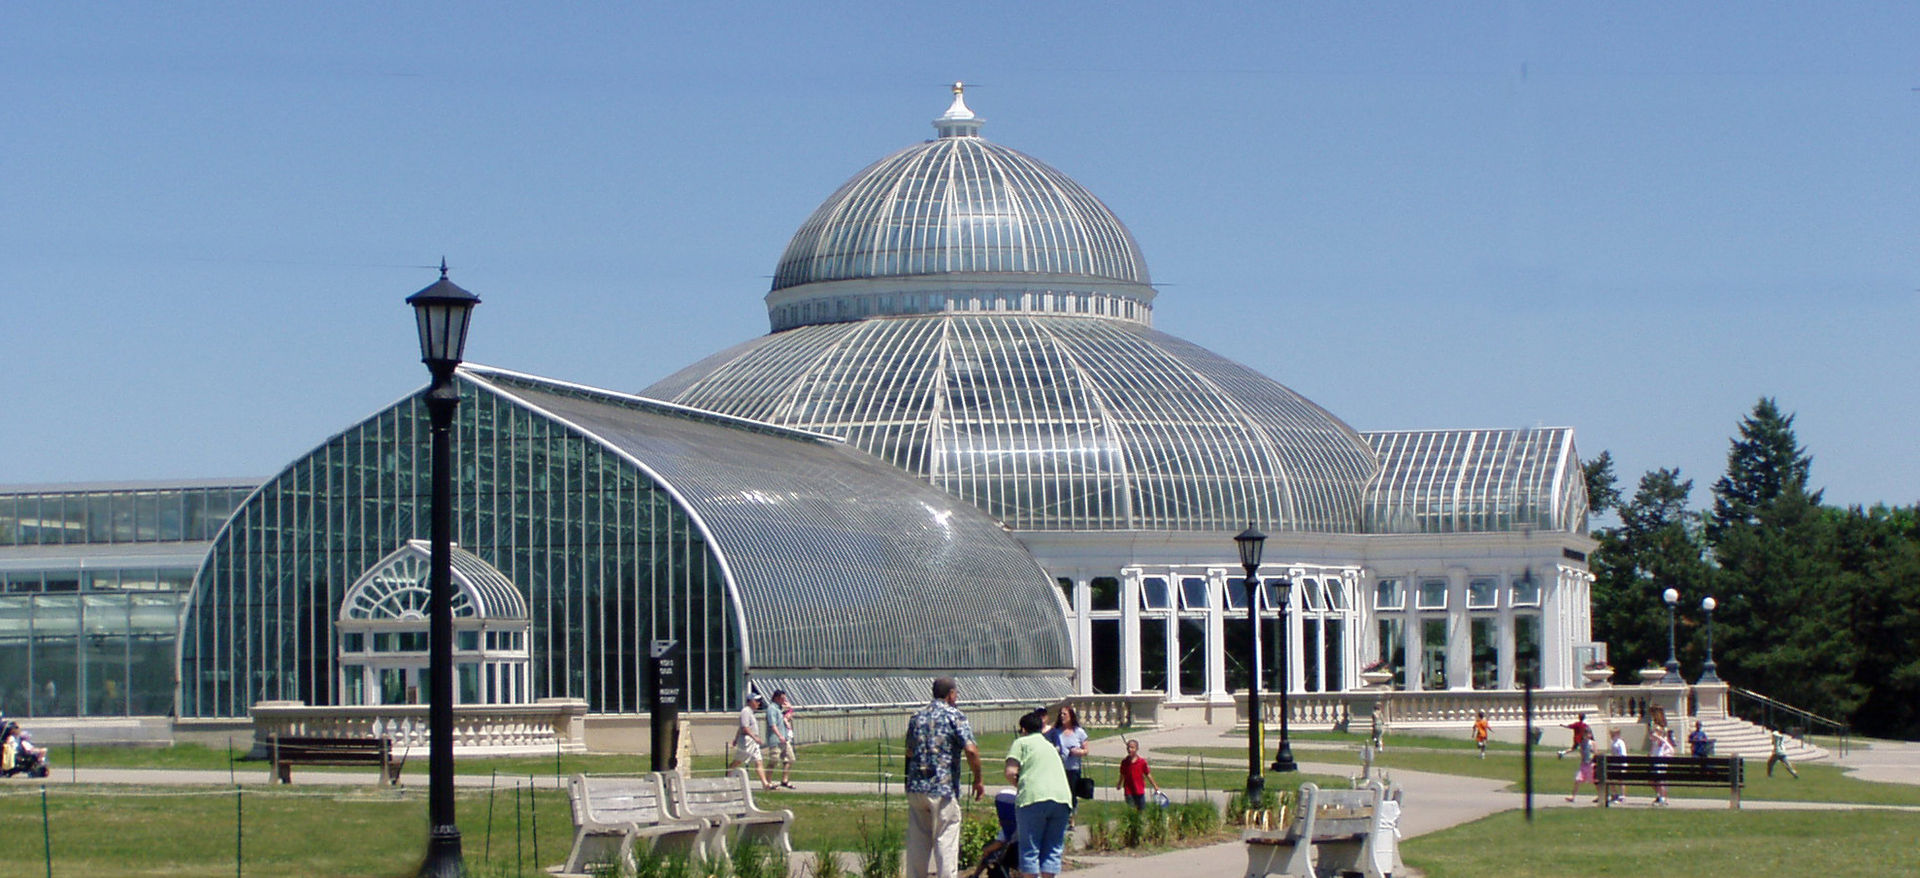 The Marjorie McNeely Conservatory was built in 1915.